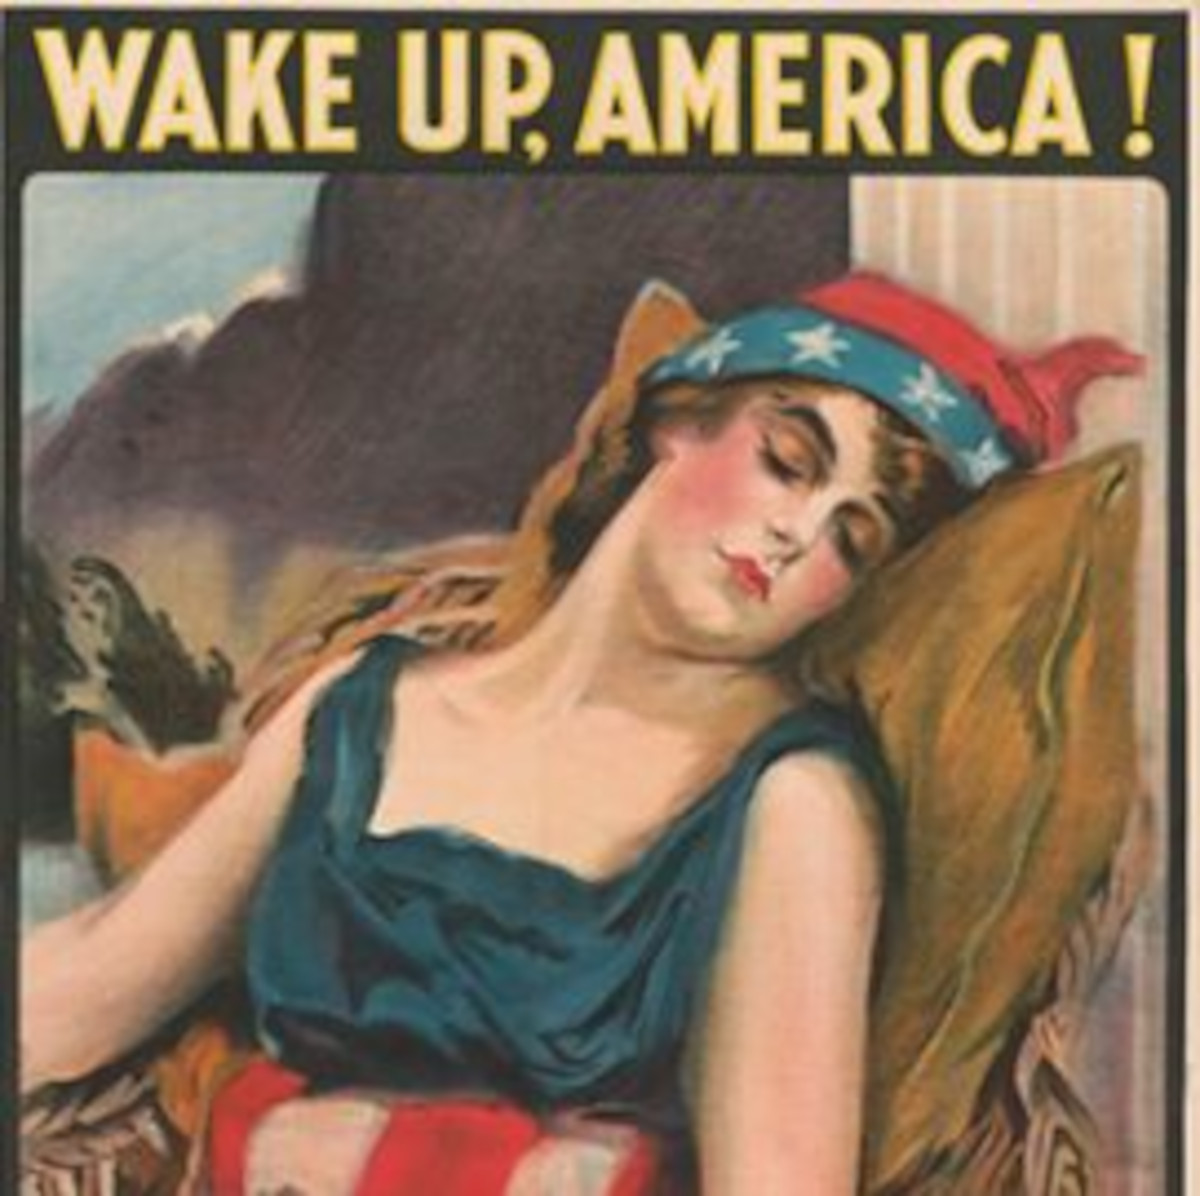 Poster shows a woman dressed in Stars & Stripes, symbolizing America asleep.